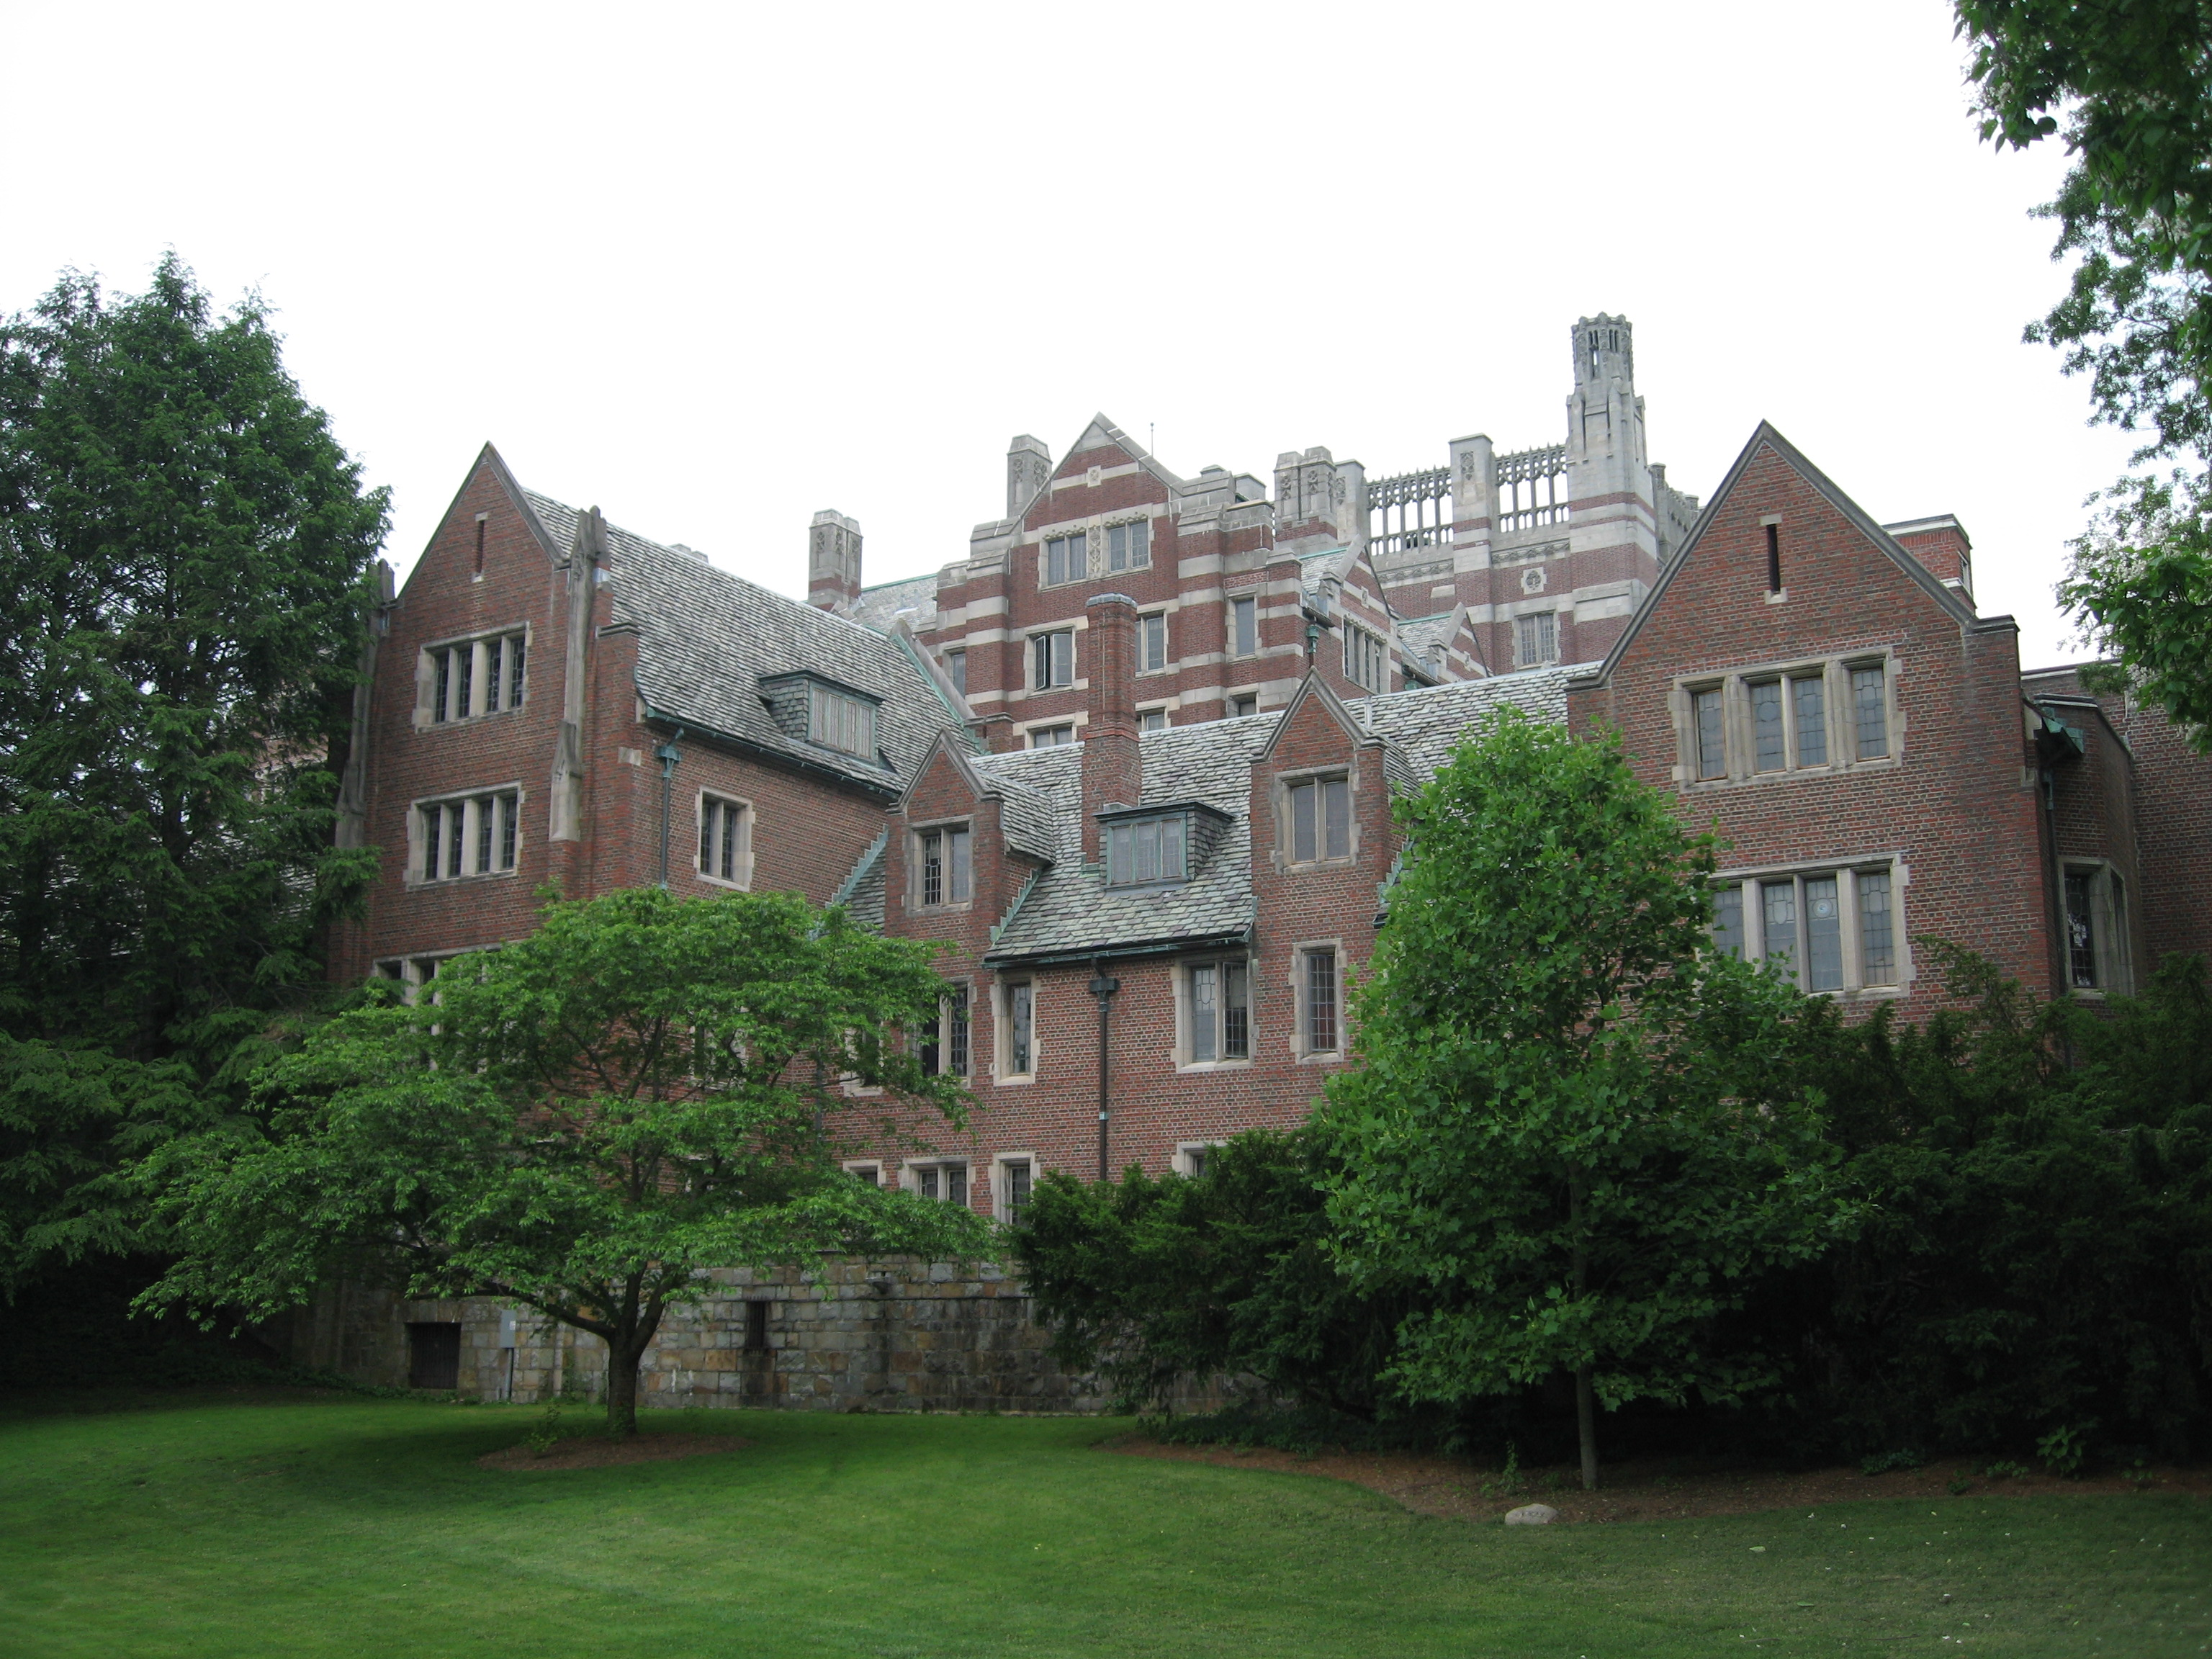 File:Wellesley College campus.jpg - Wikimedia Commons